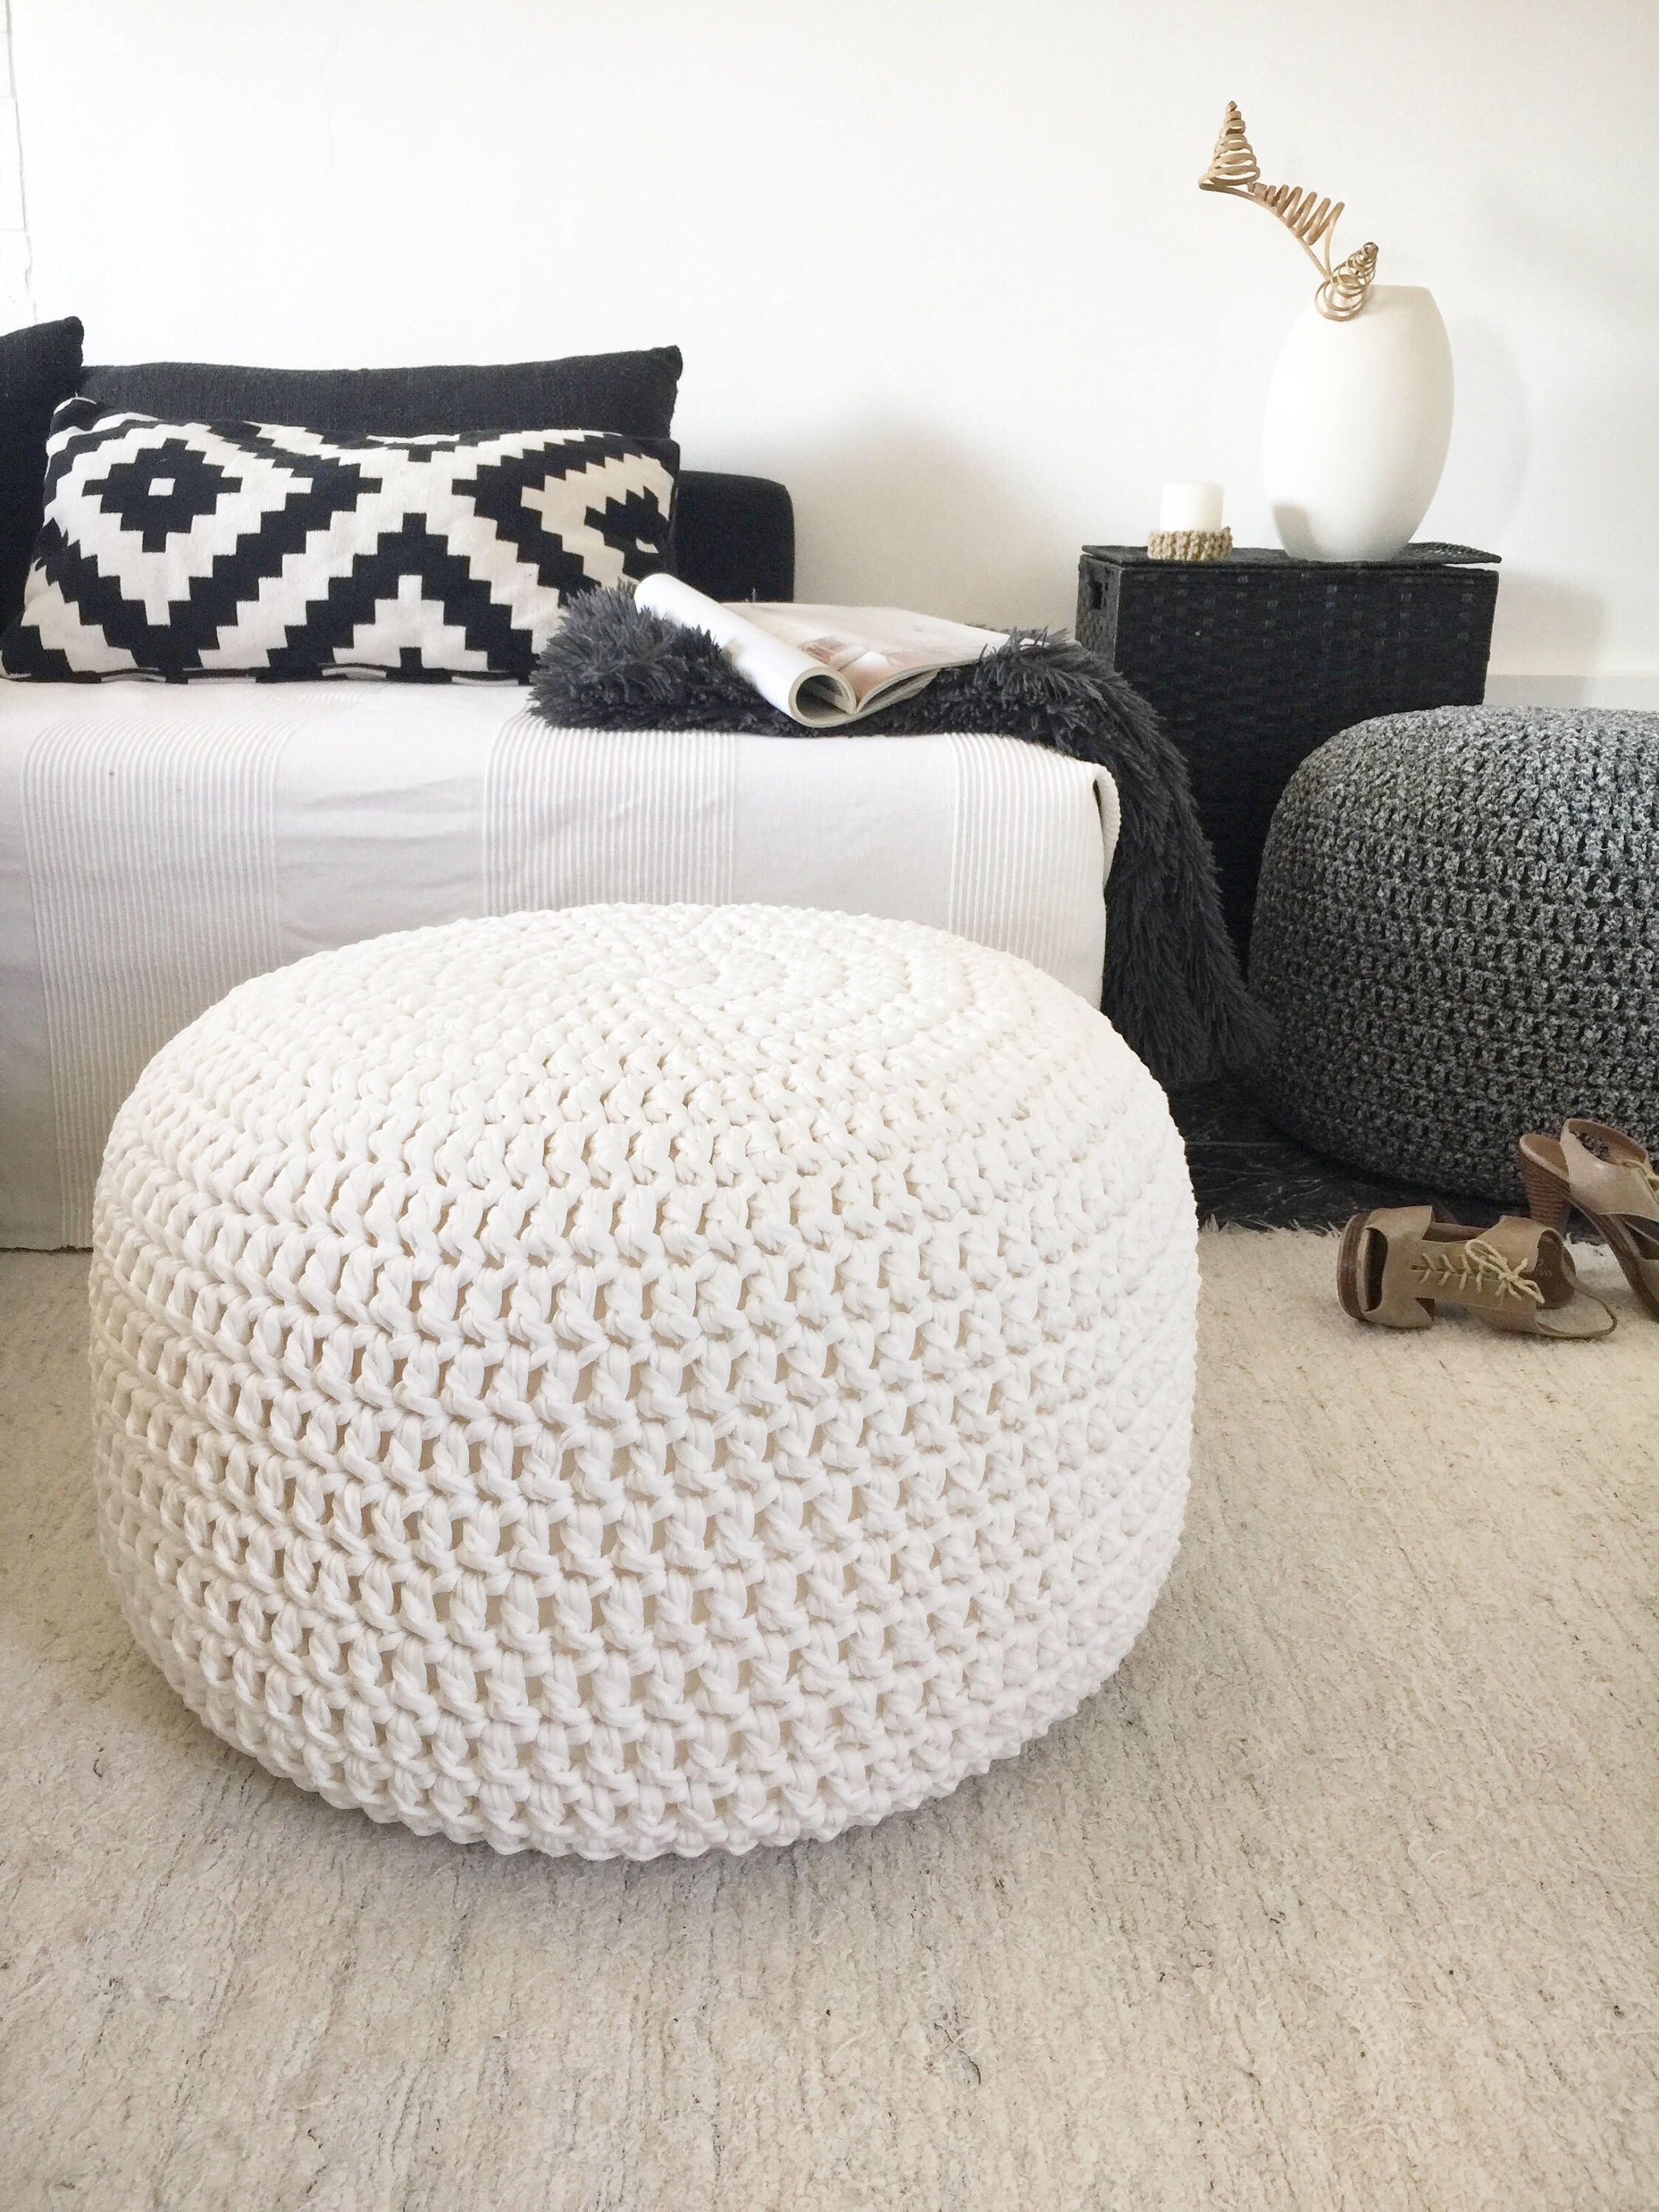 "Large Pouf Ottoman Gorgeous Large Stuffed Crochet Pouf Ottoman Nursery Footstool 24"" Floor Design Decoration"